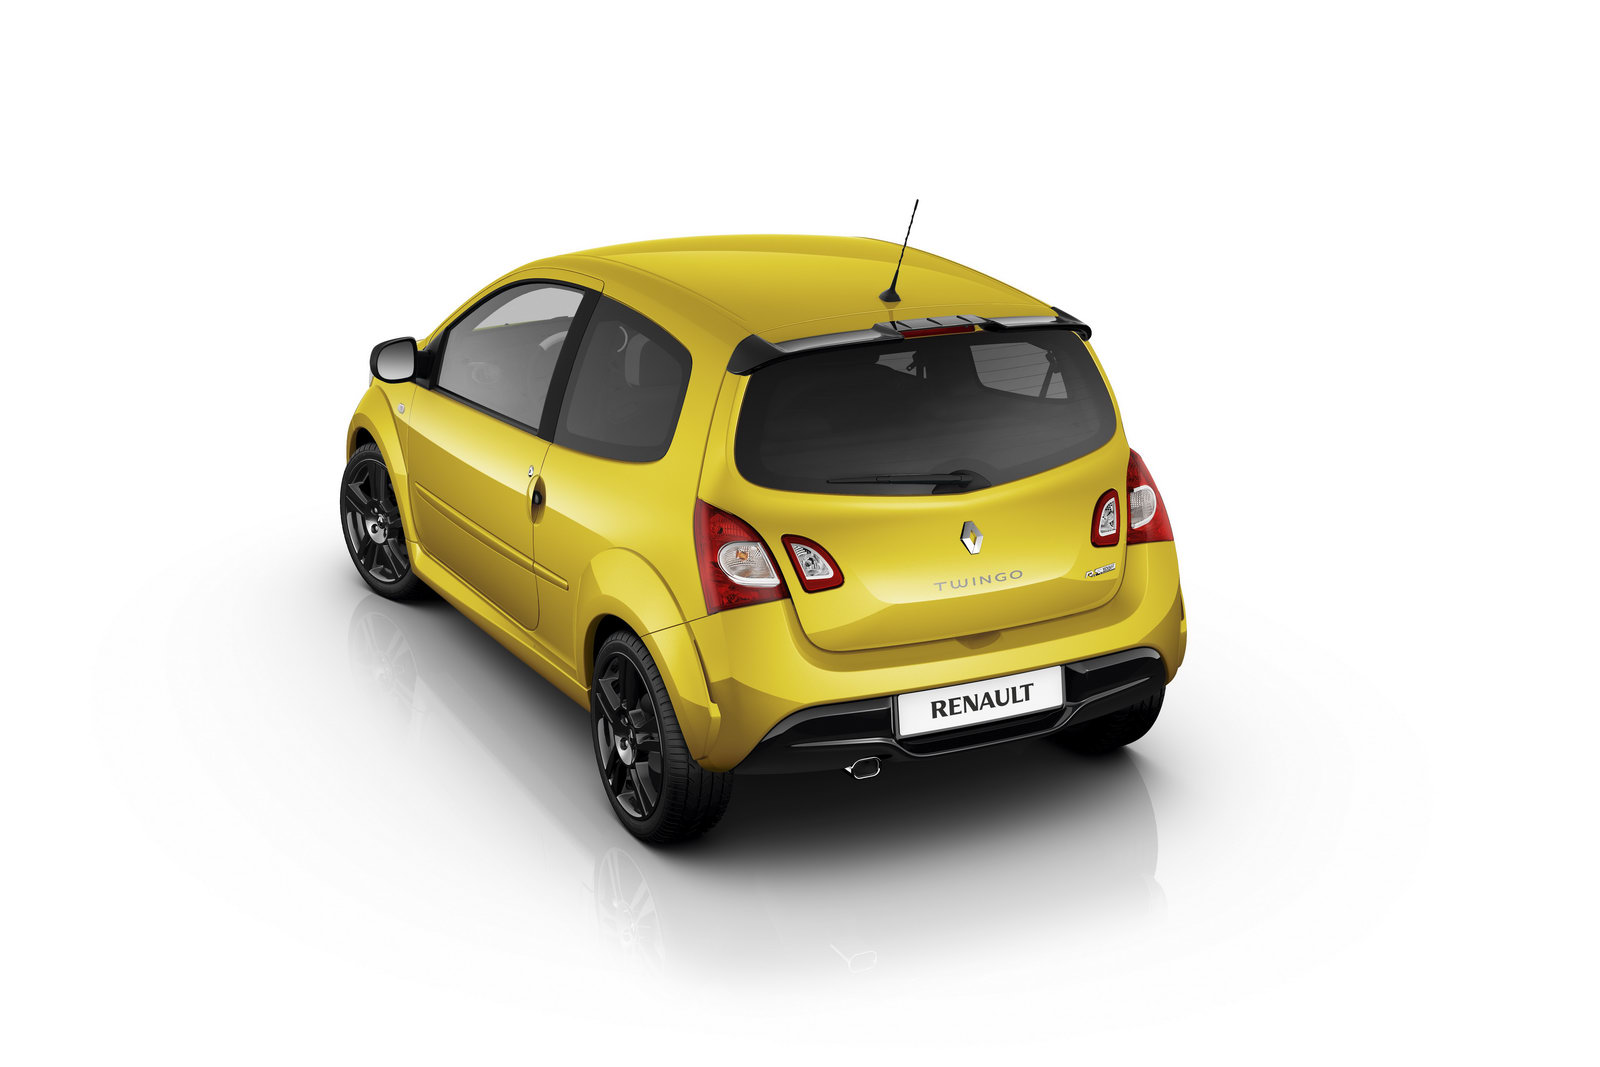 High Quality Tuning Files Renault Twingo II 1 6i RS 133hp